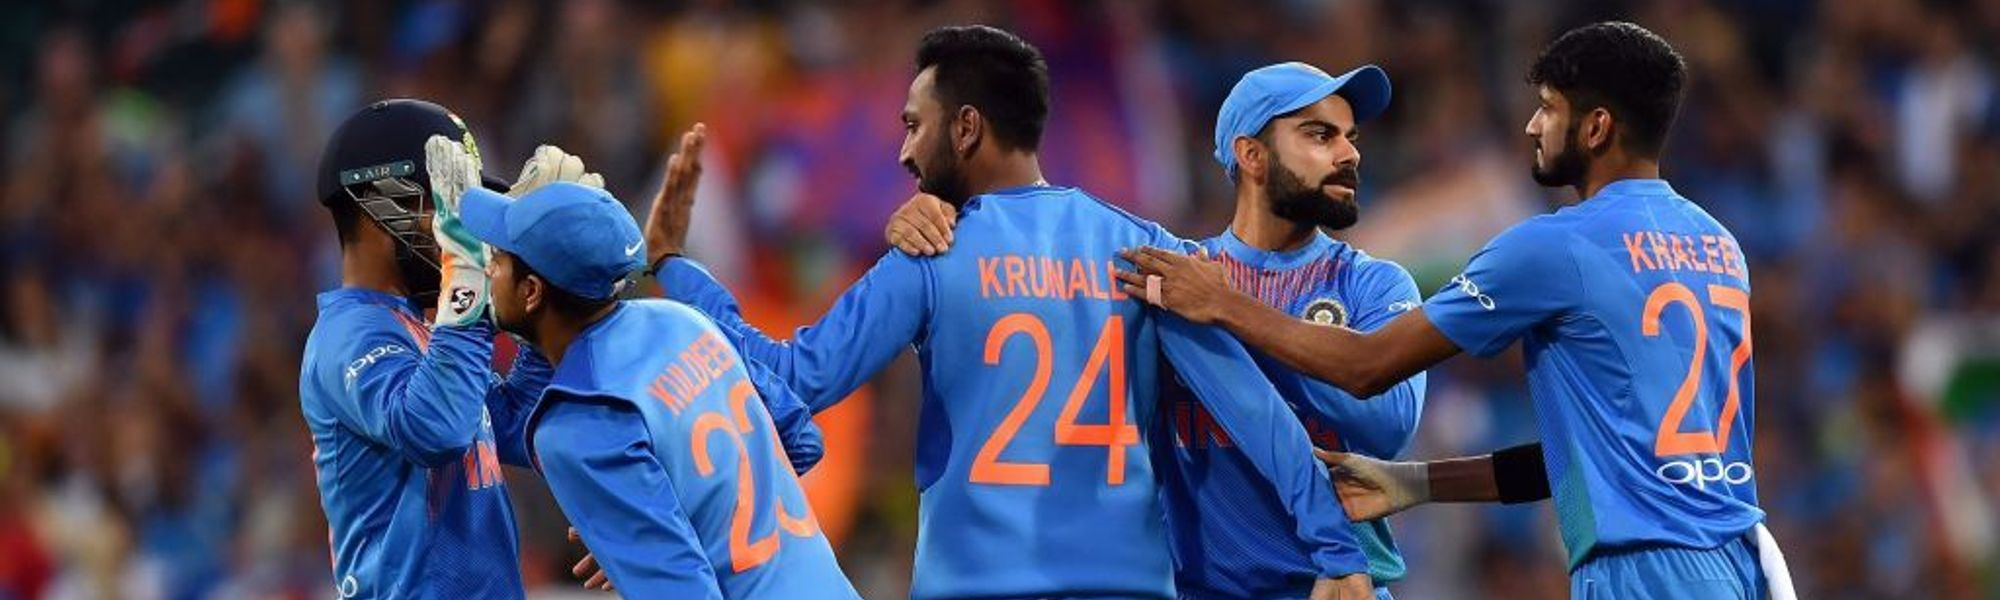 India Have Game Ready Players For T20wc Virat Kohli